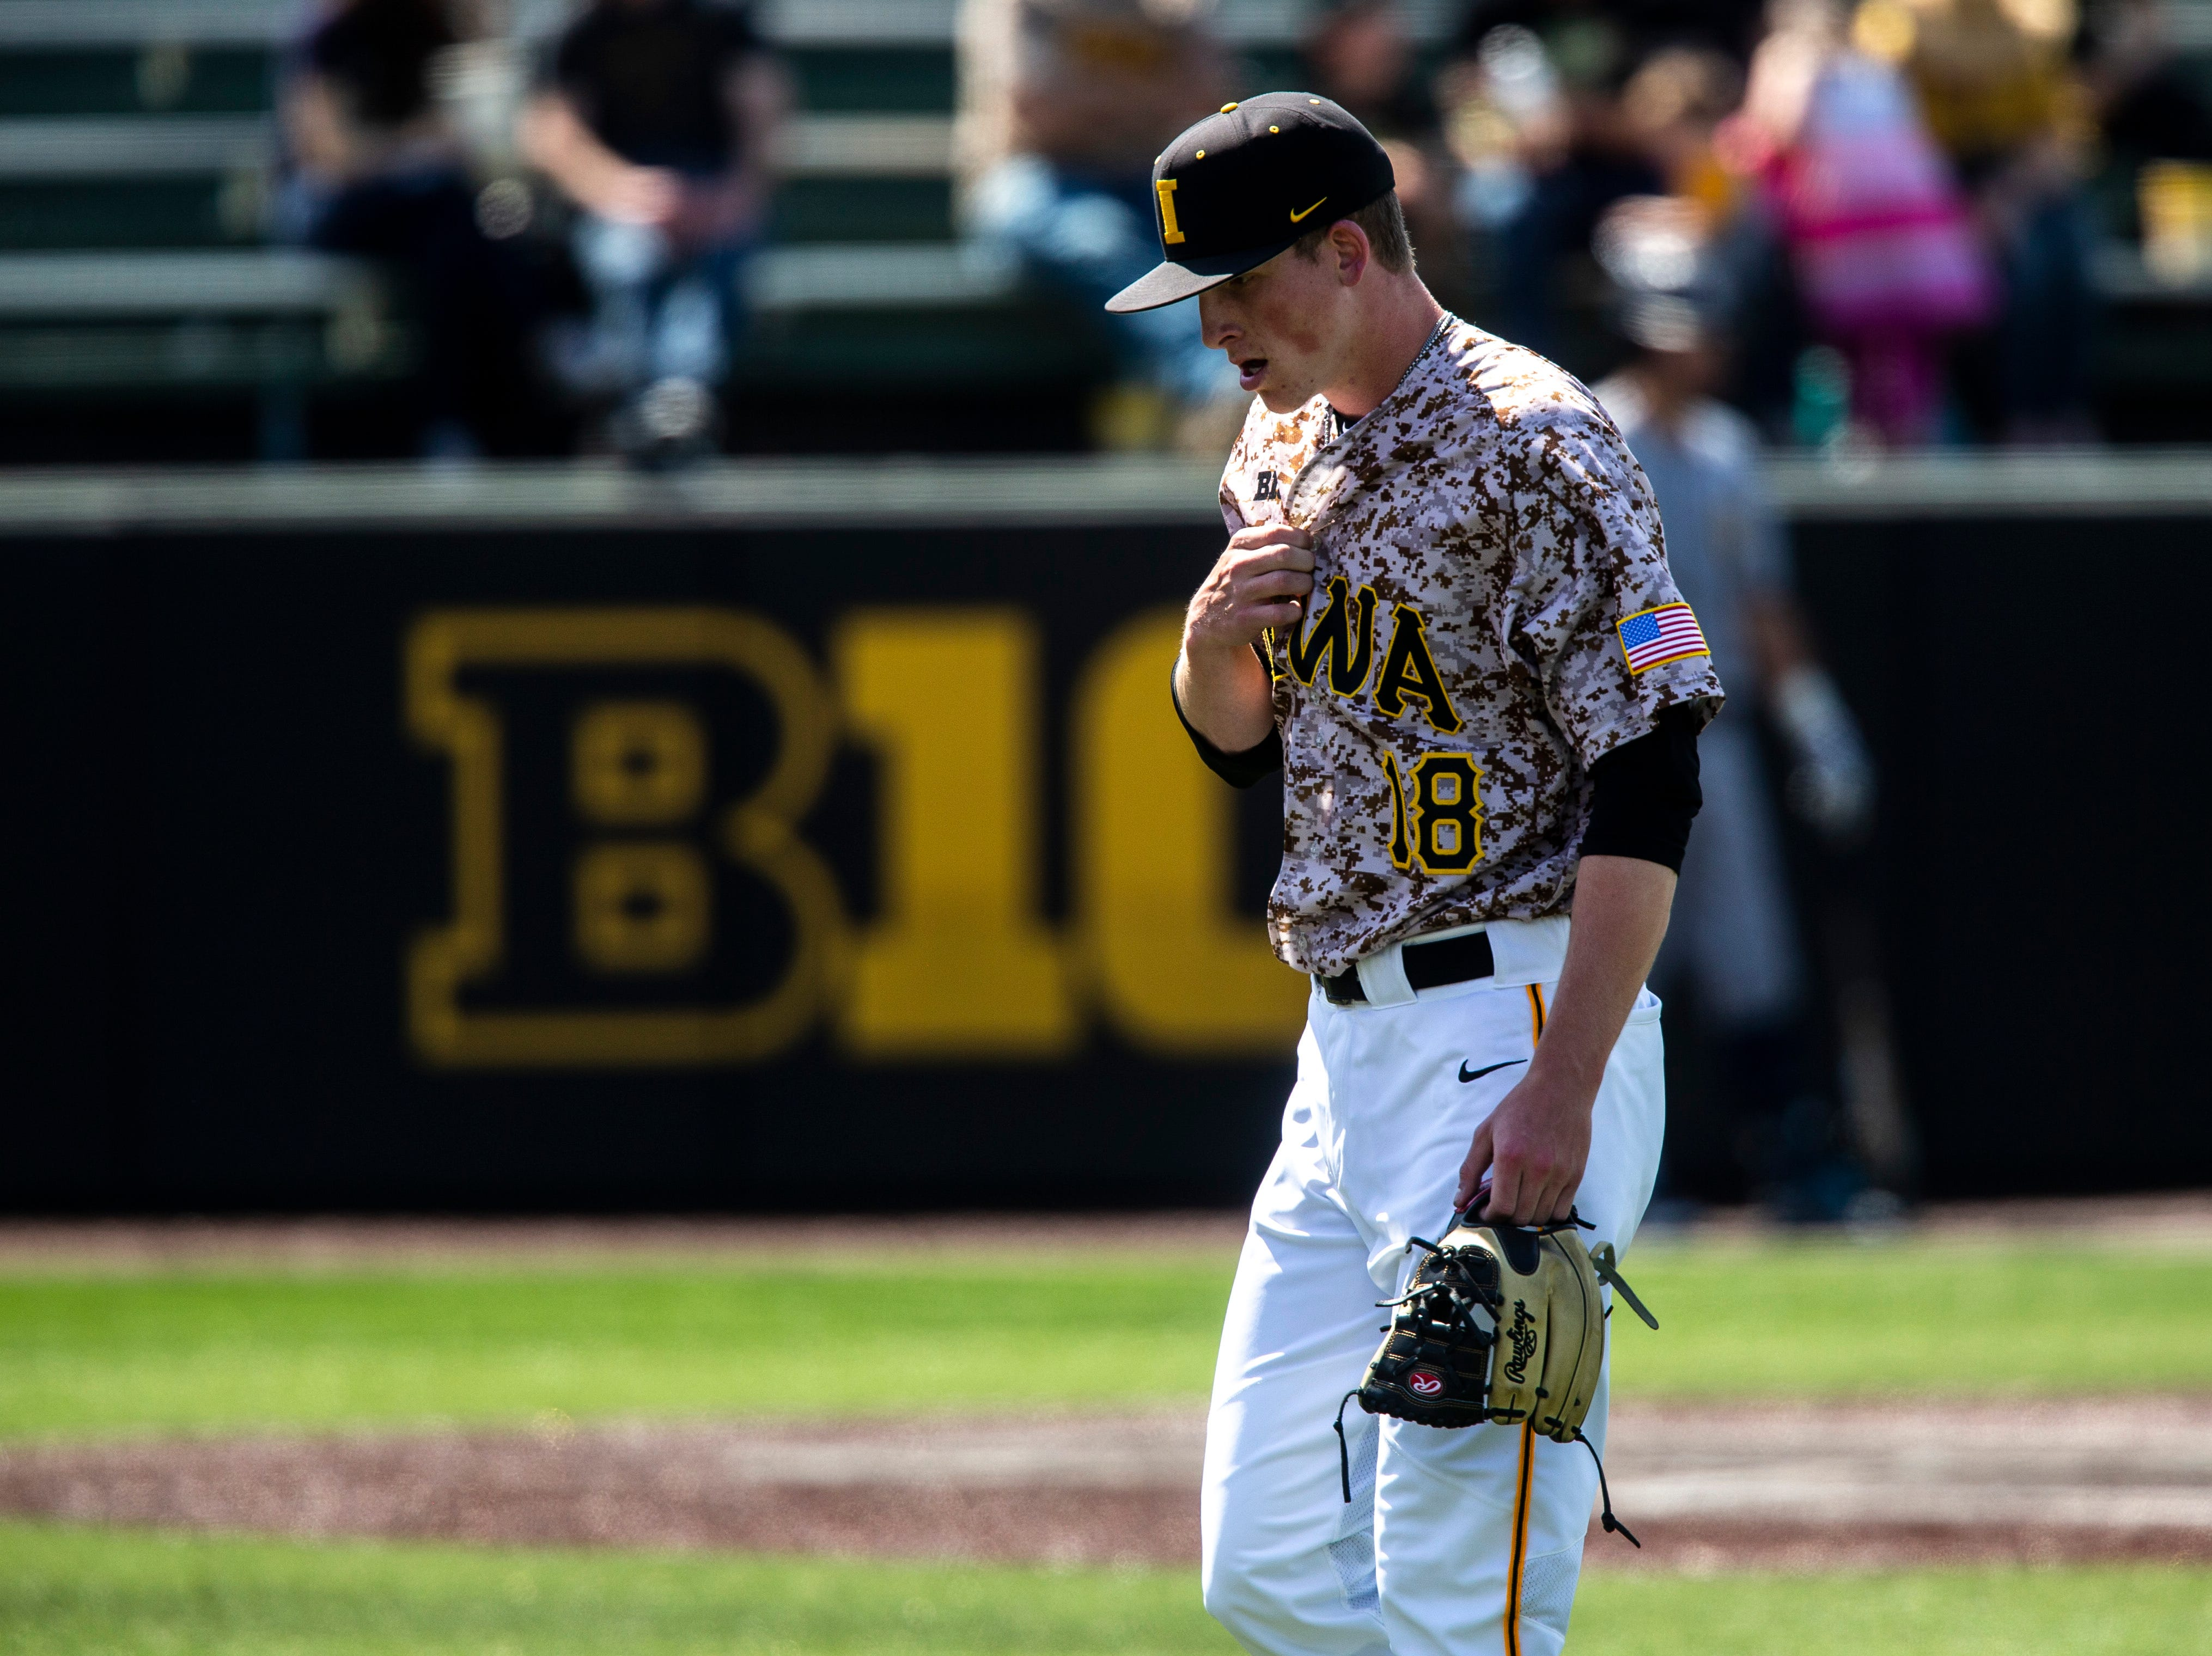 Iowa pitcher Shane Ritter (18) adjusts his jersey while heading to the dugout during a NCAA non conference baseball game, Sunday, May 5, 2019, at Duane Banks Field in Iowa City, Iowa.